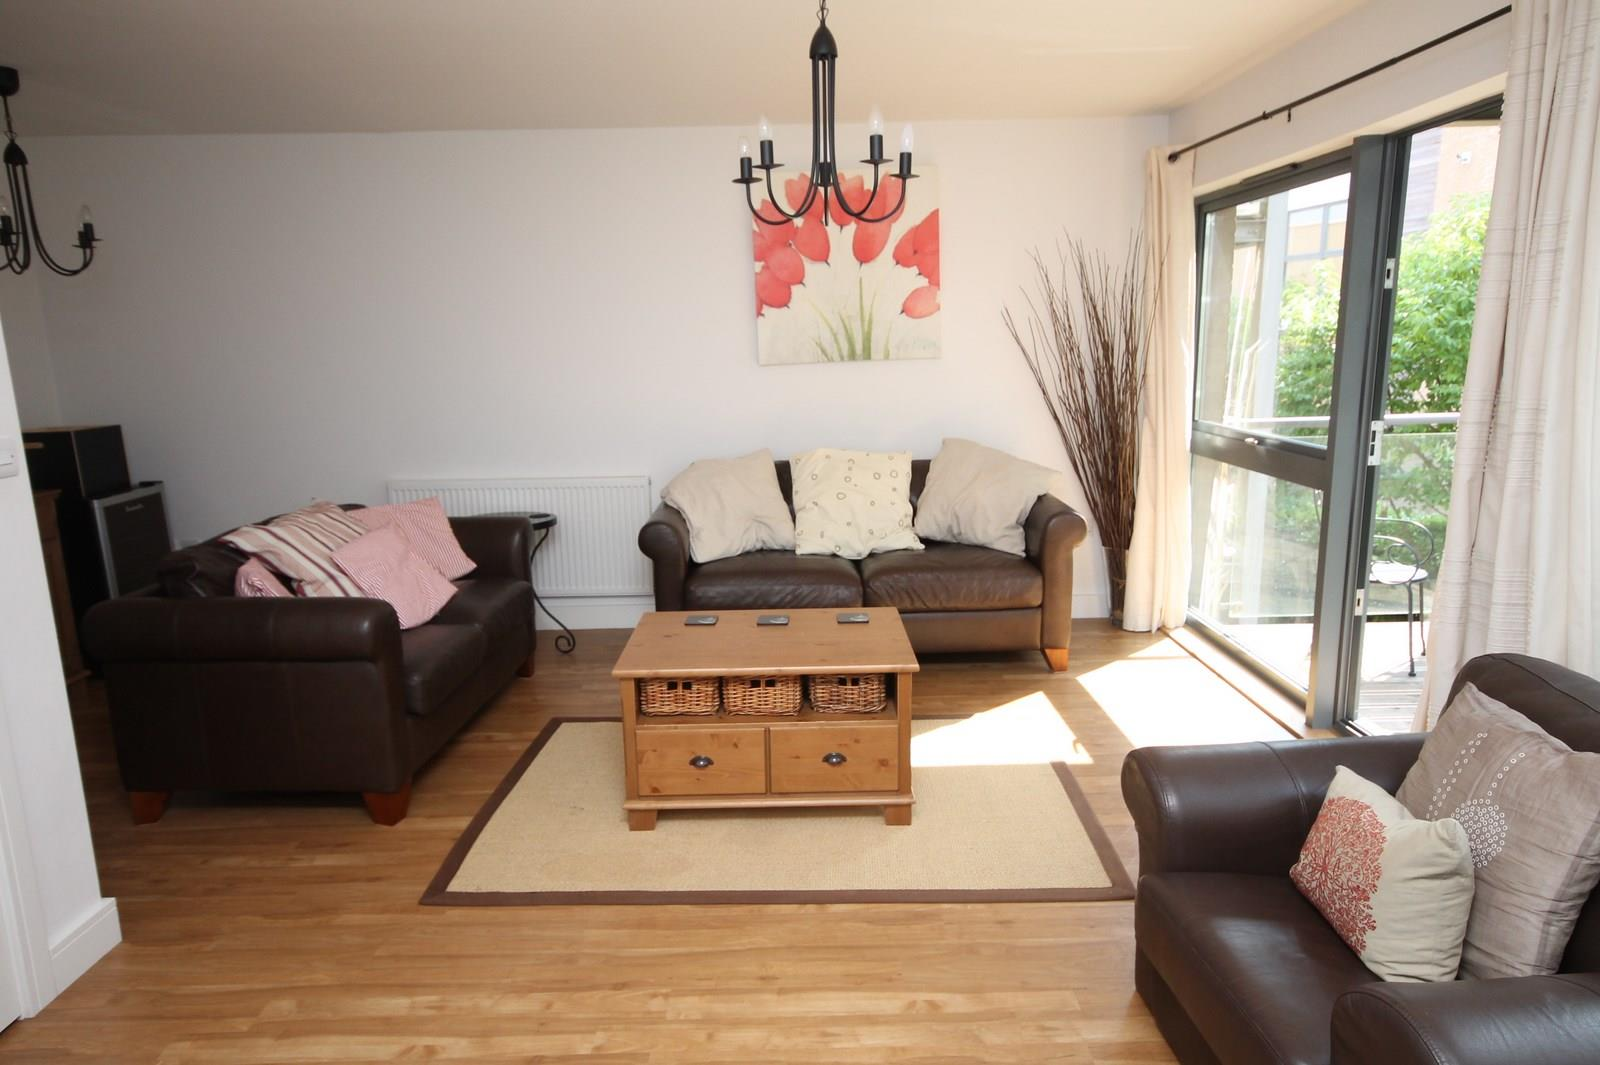 4 bed house to rent in Chapter Walk, Bristol - Property Image 1